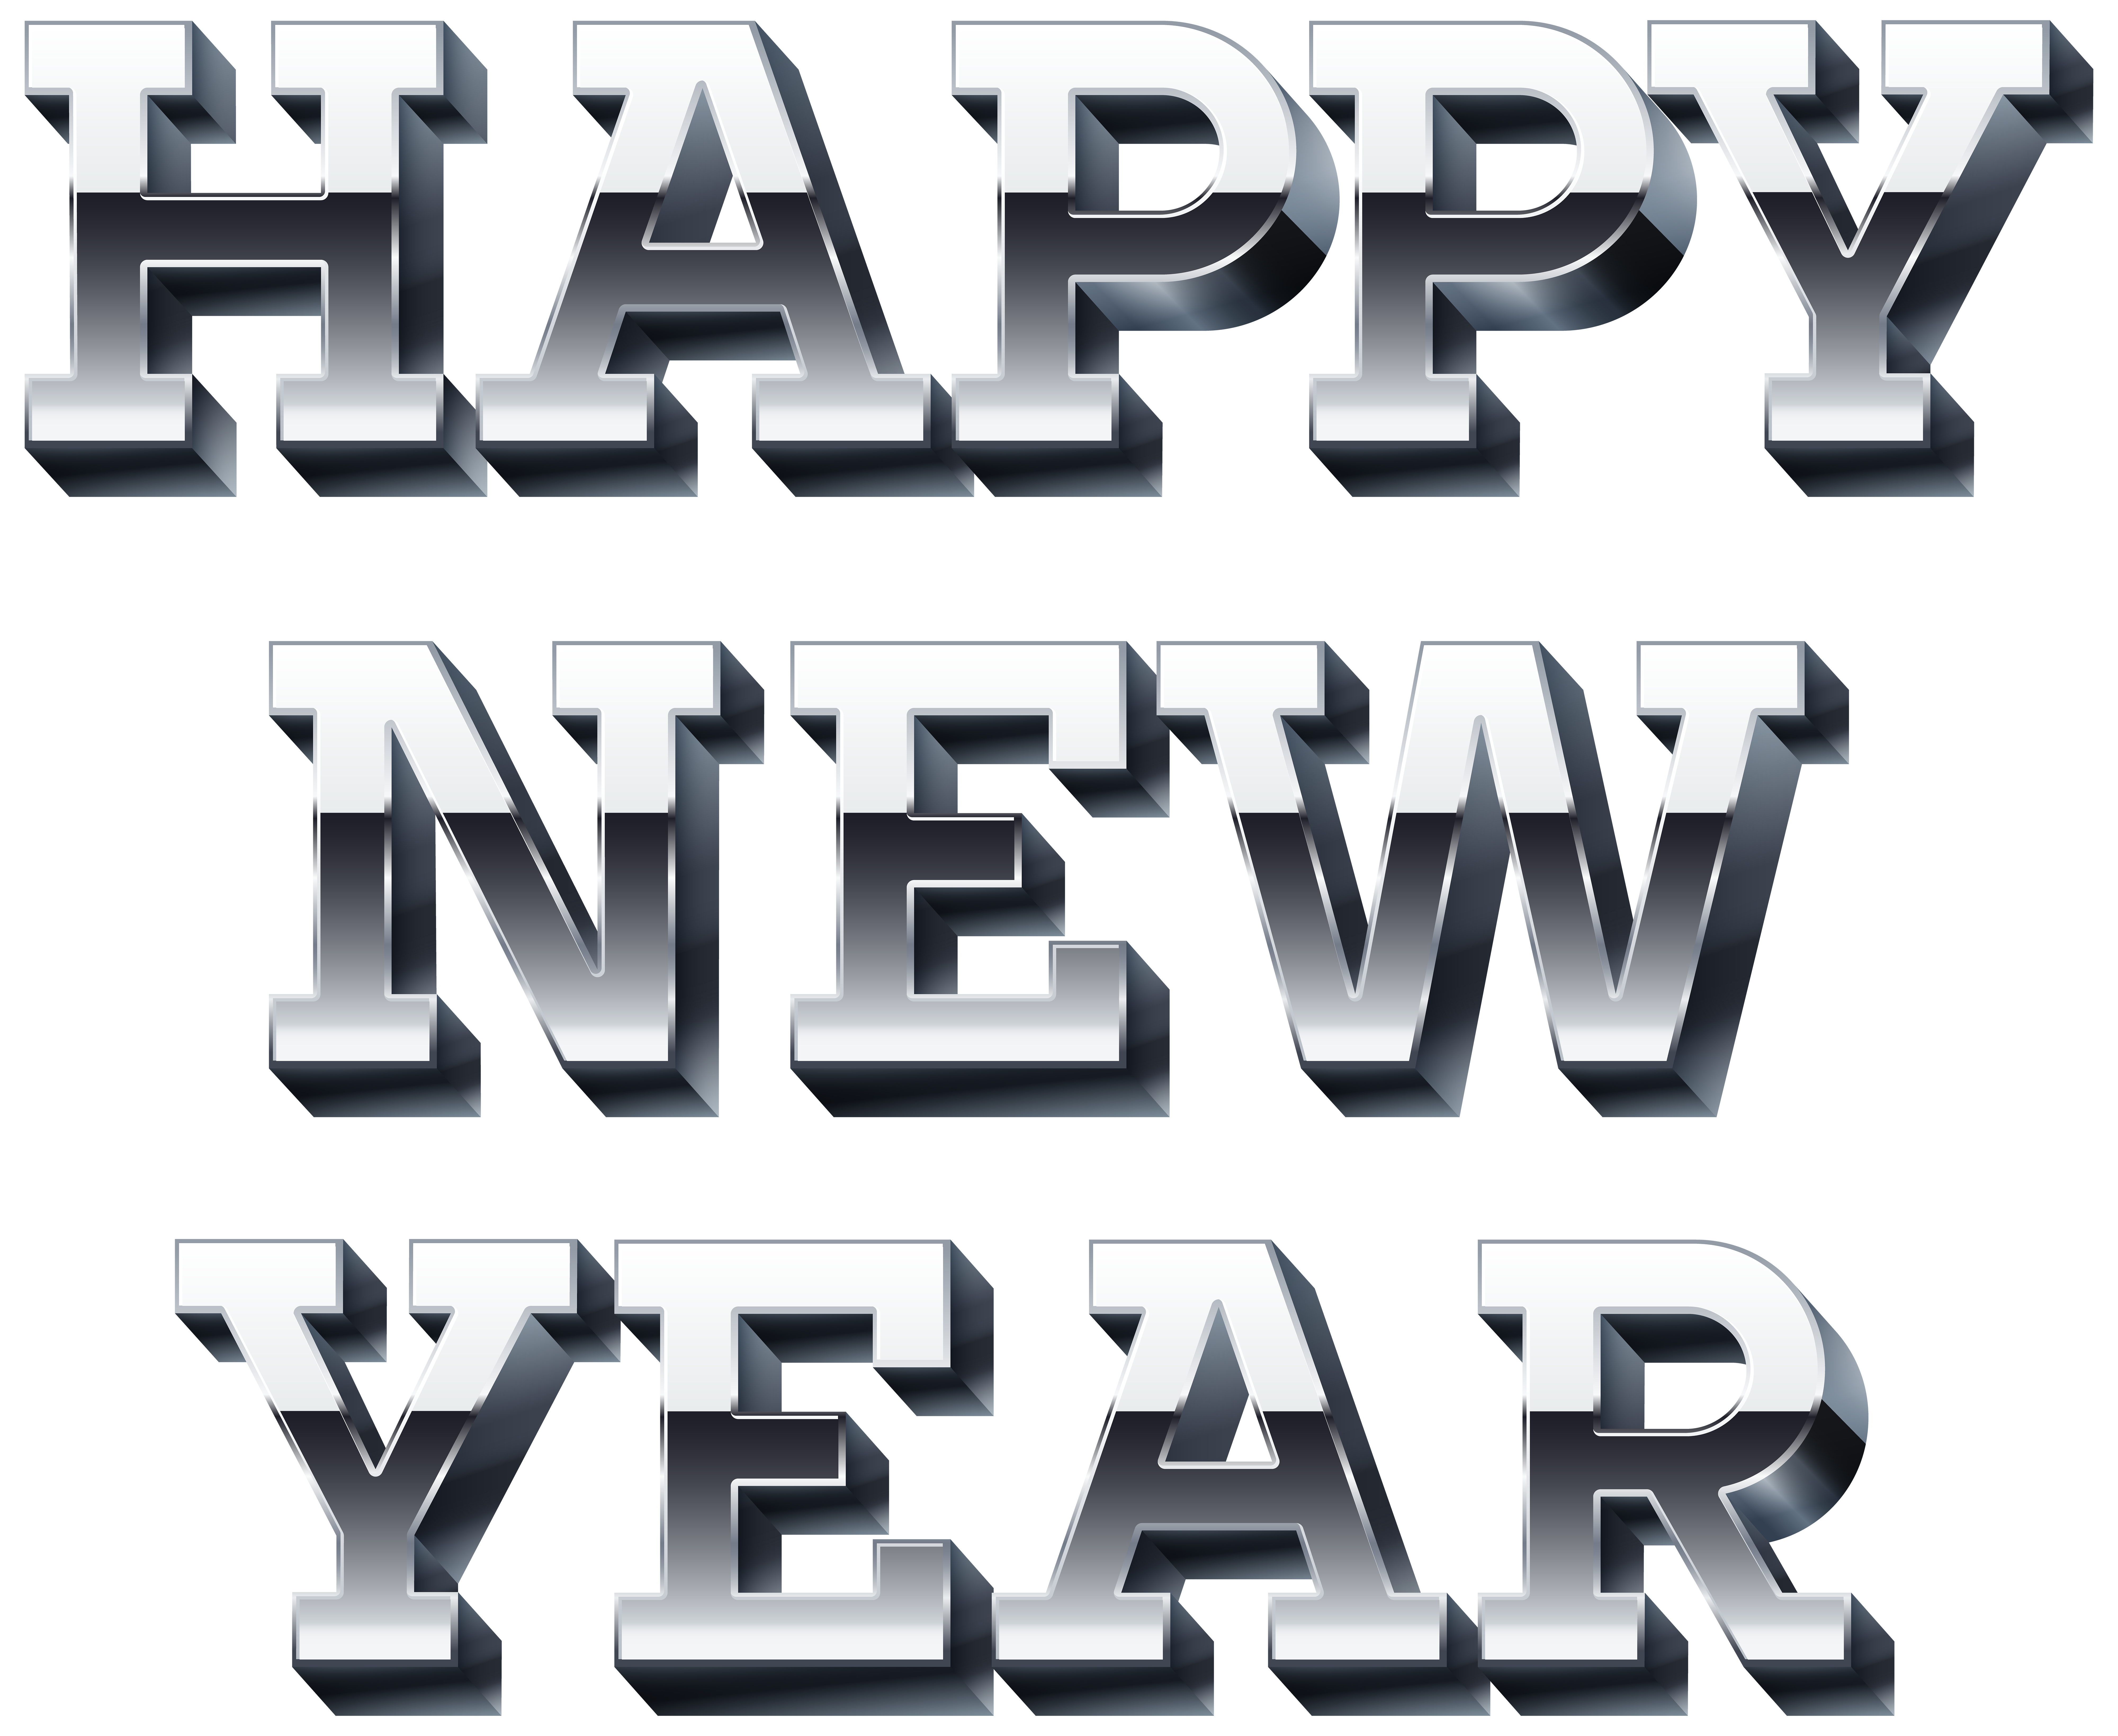 New year silver png. Keys clipart happy